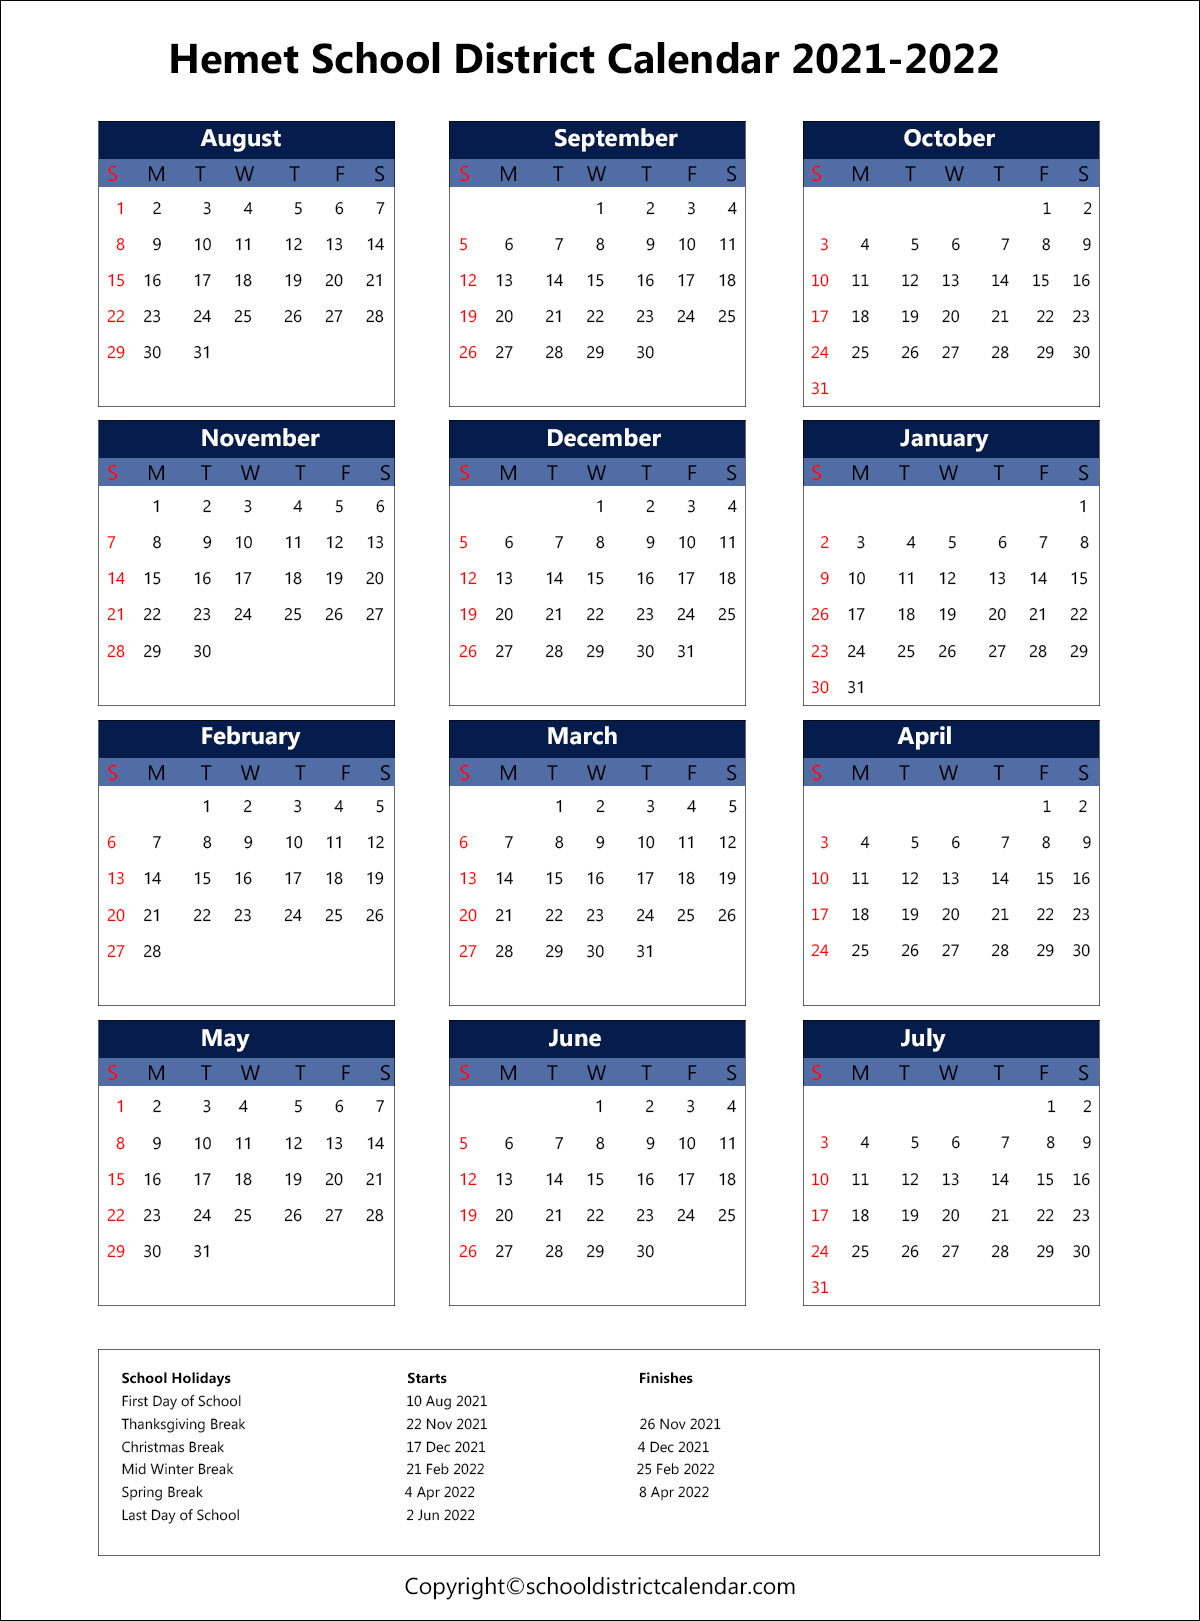 Hemet Unified School District Calendar 2021